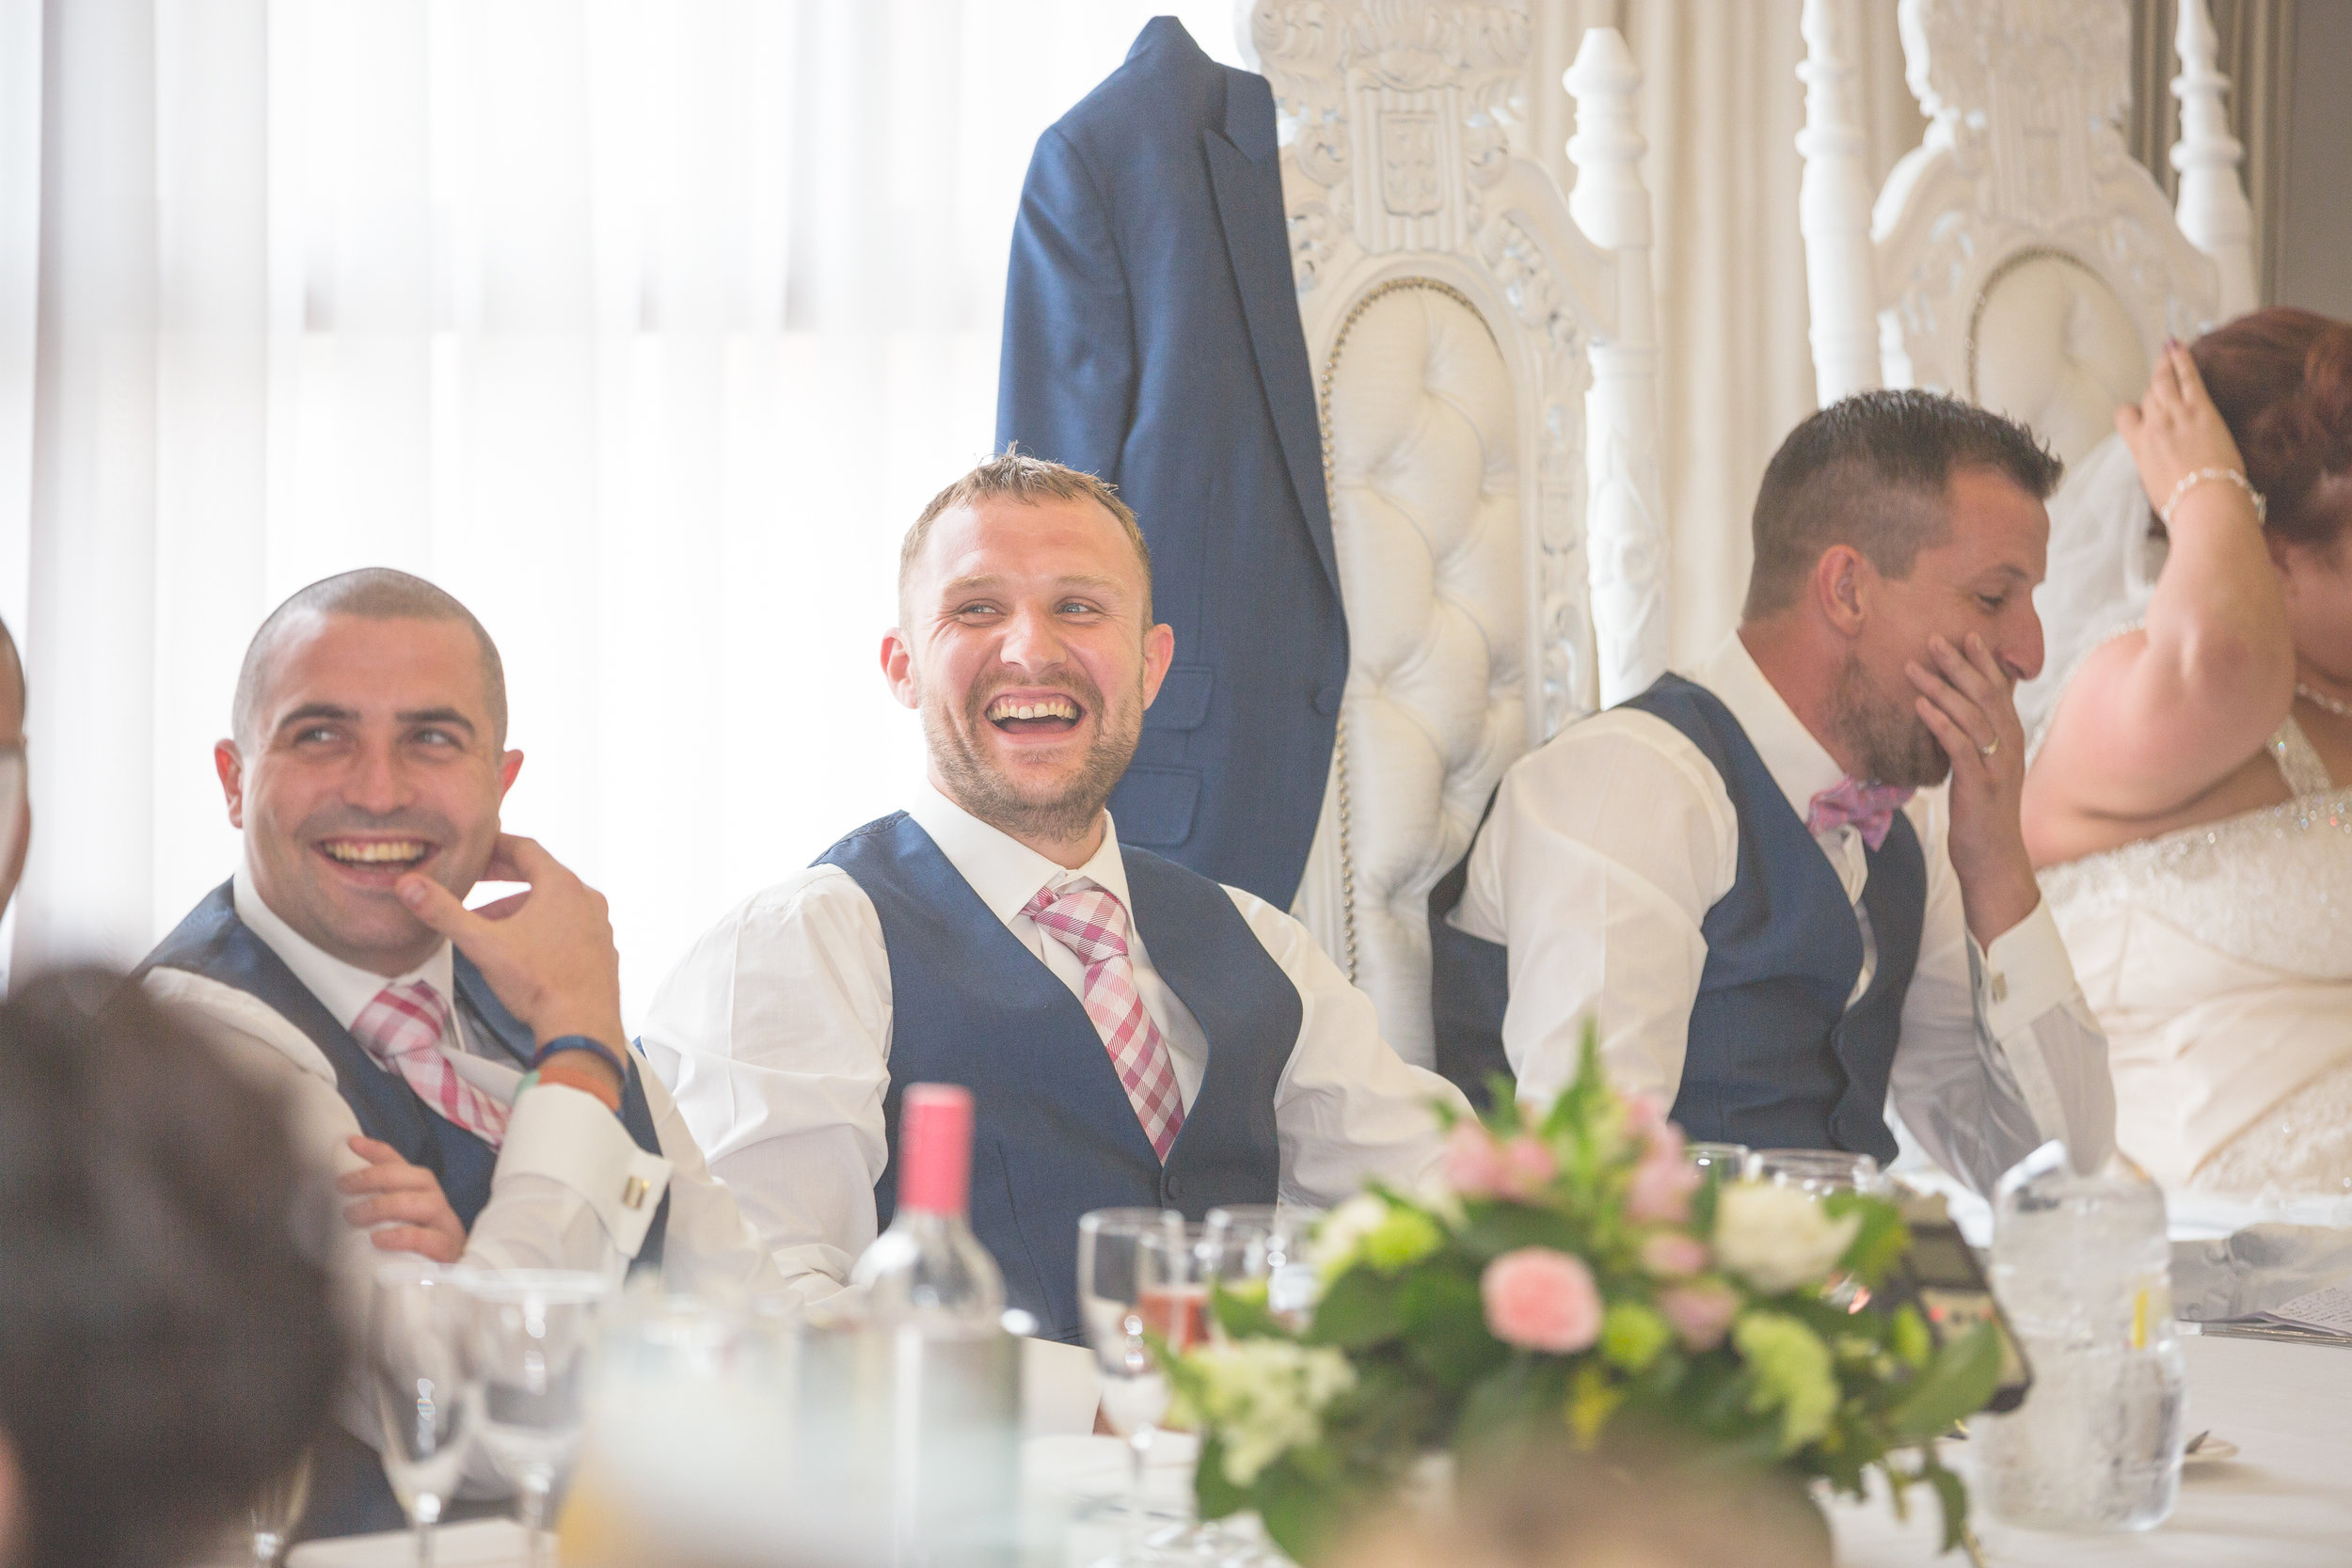 Antoinette & Stephen - Speeches | Brian McEwan Photography | Wedding Photographer Northern Ireland 37.jpg